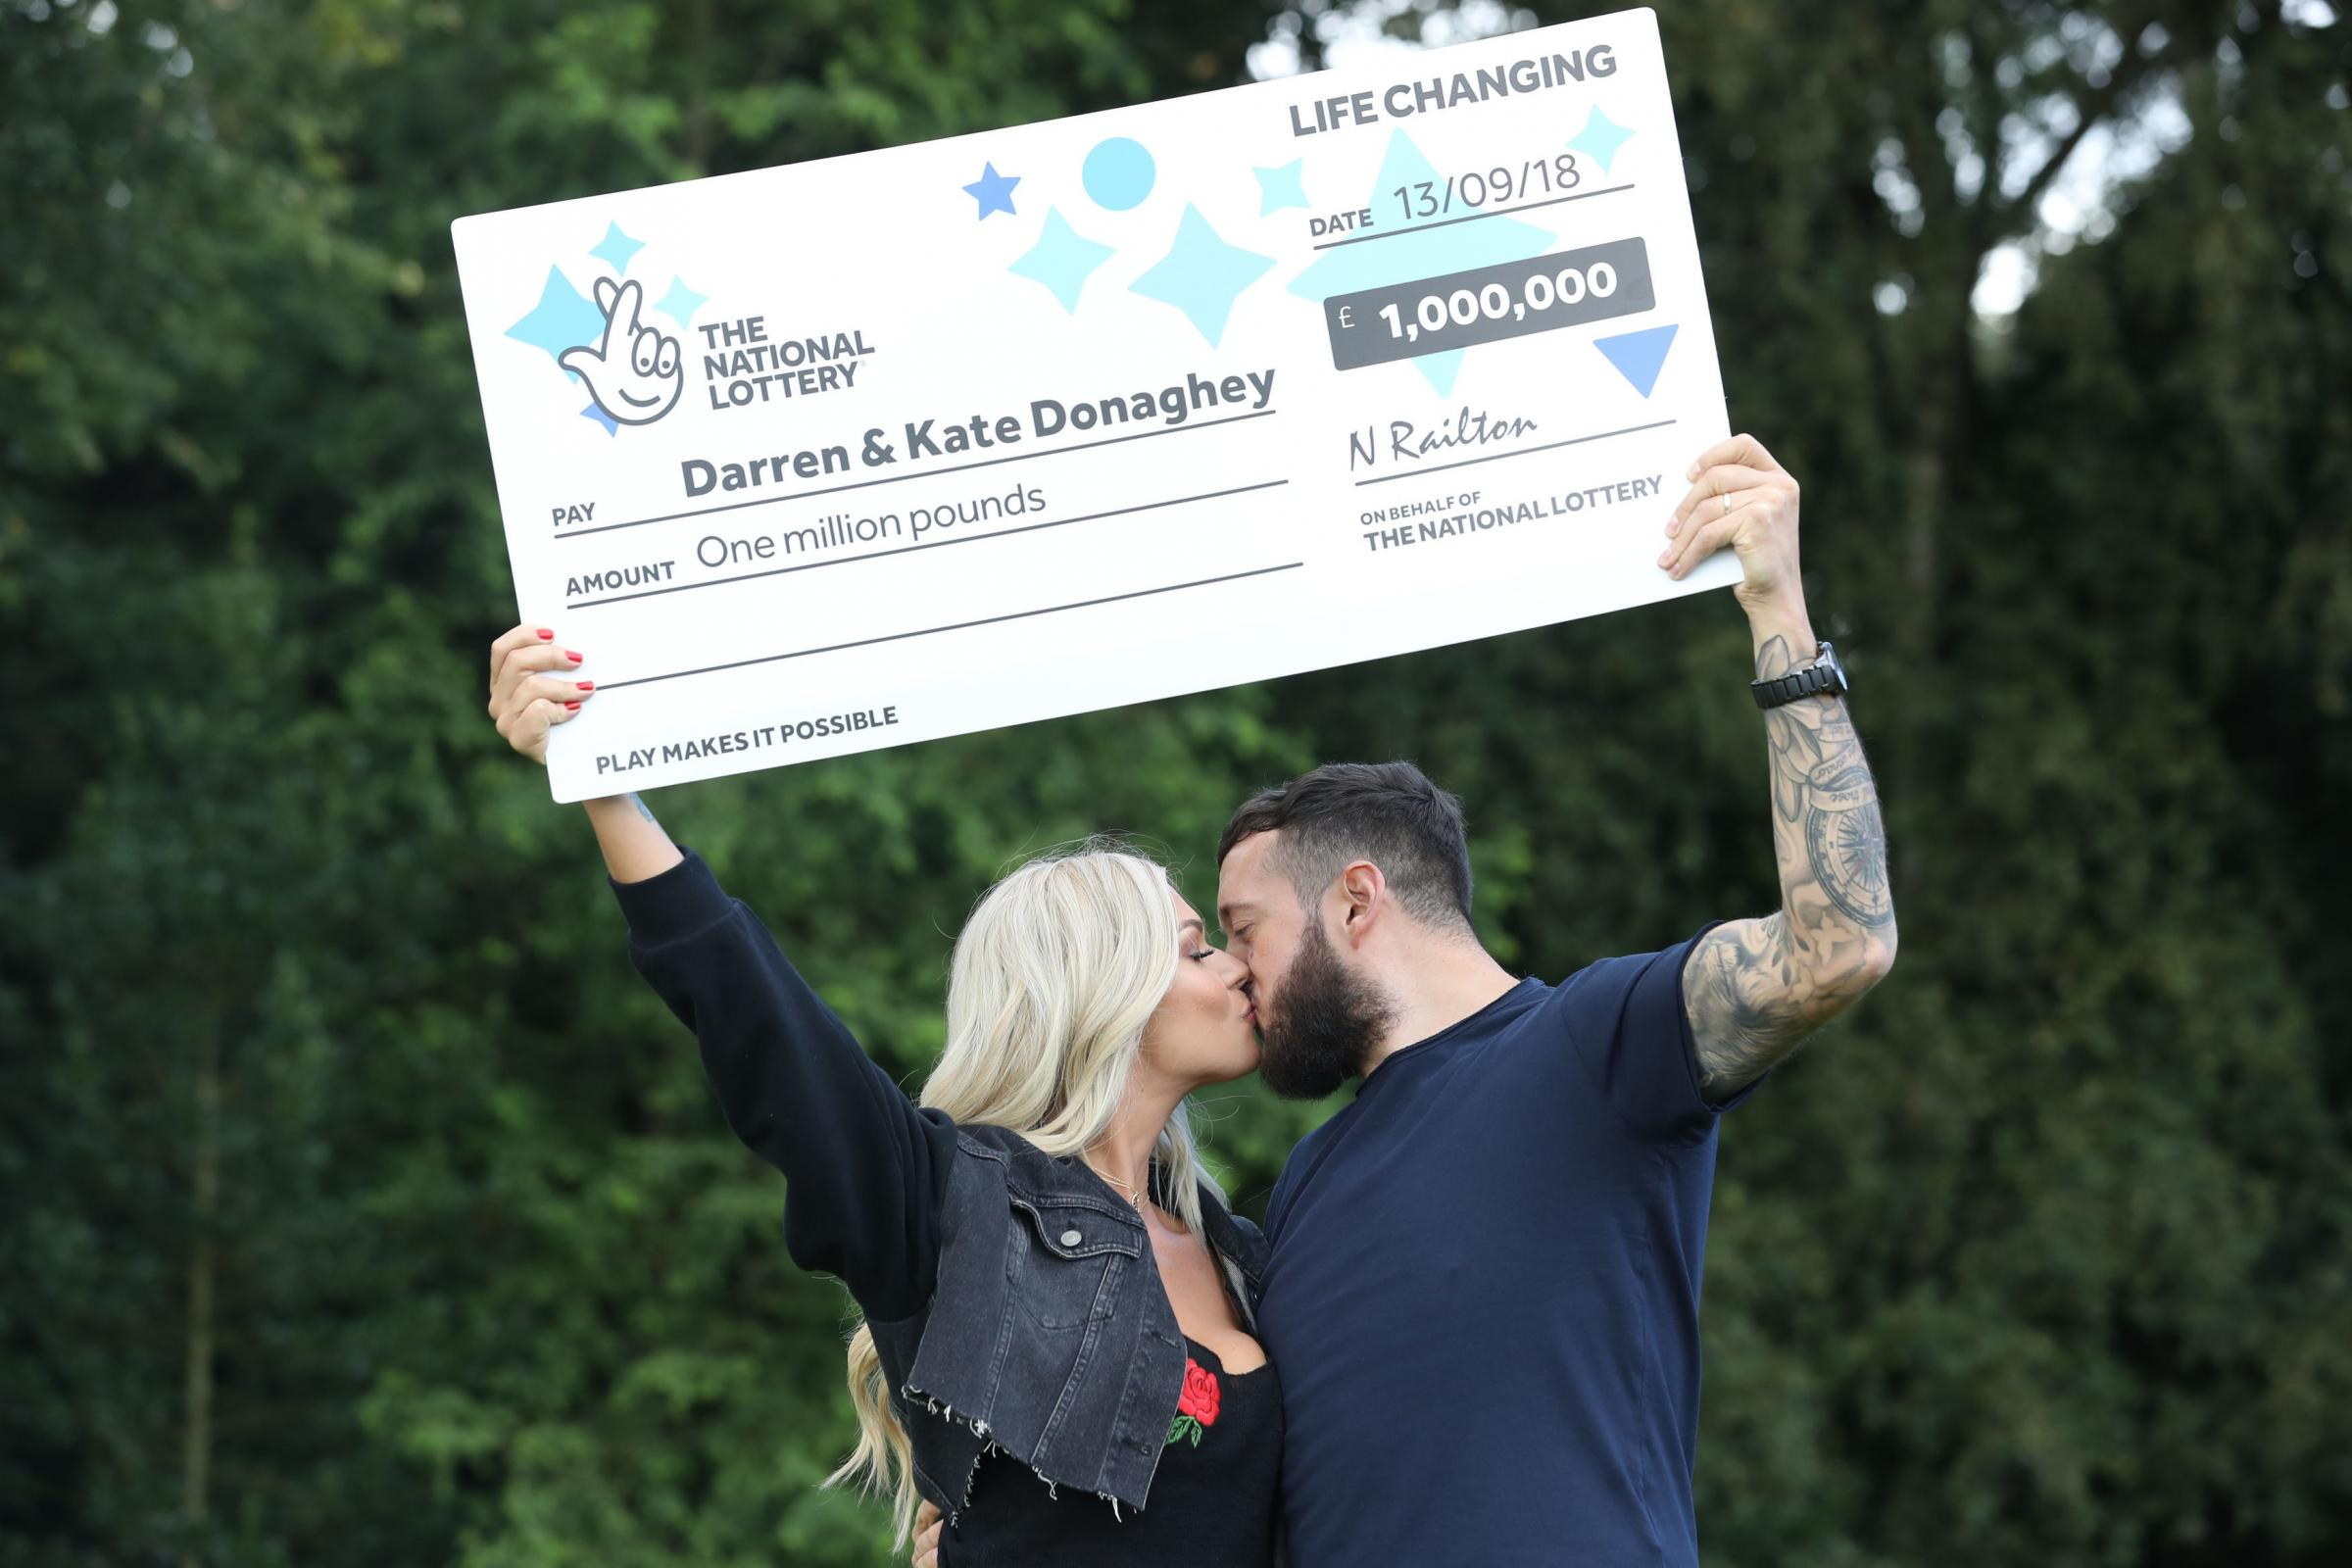 Darren and Kate Donaghey from Newcastle, celebrate their £1 million National Lottery Scratchcard win